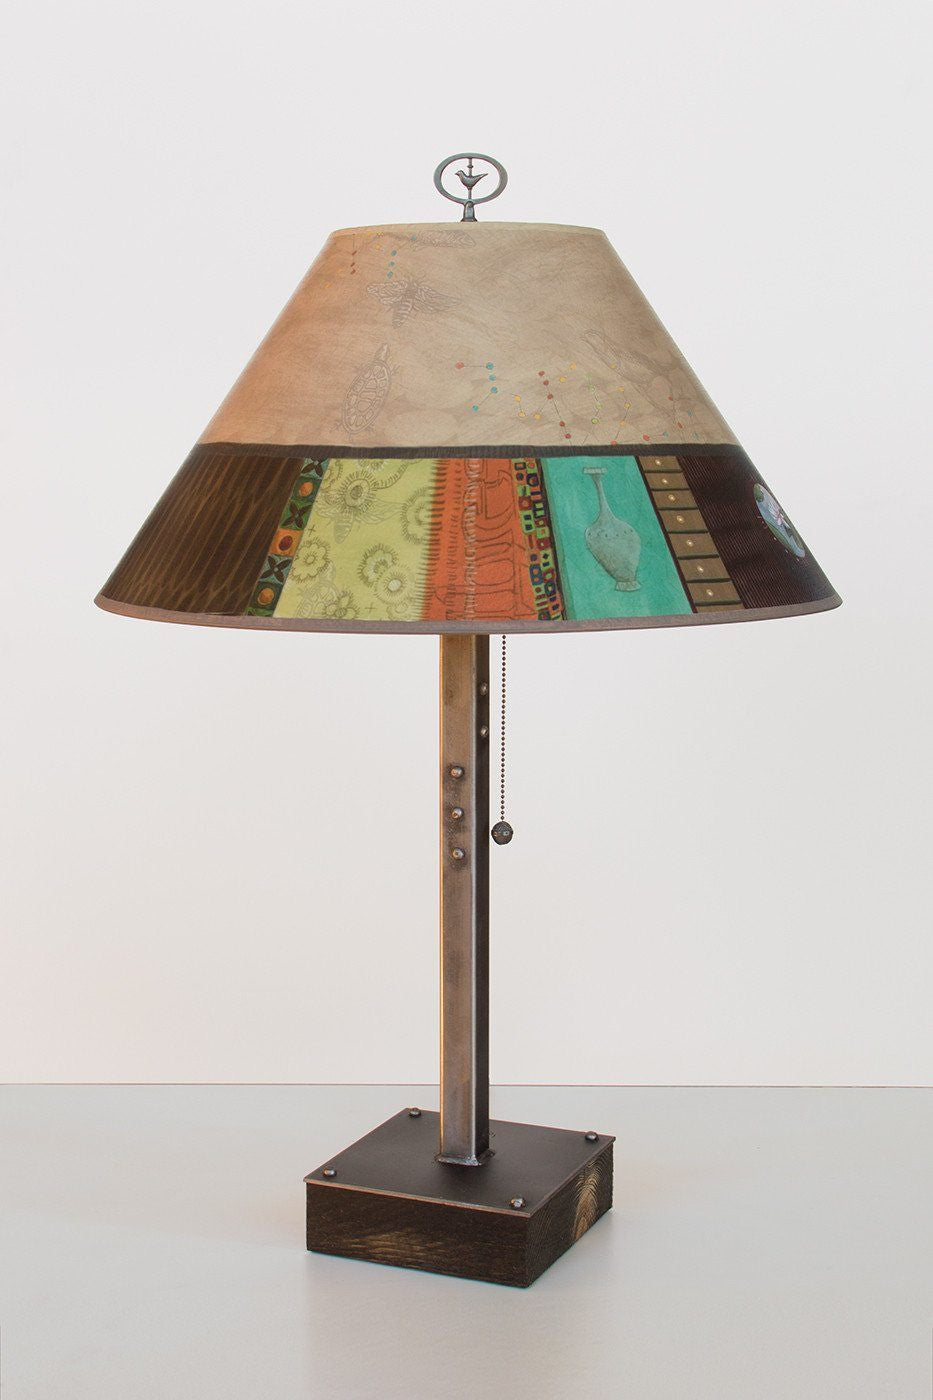 Steel Table Lamp on Wood with Large Conical Shade in Linen Match